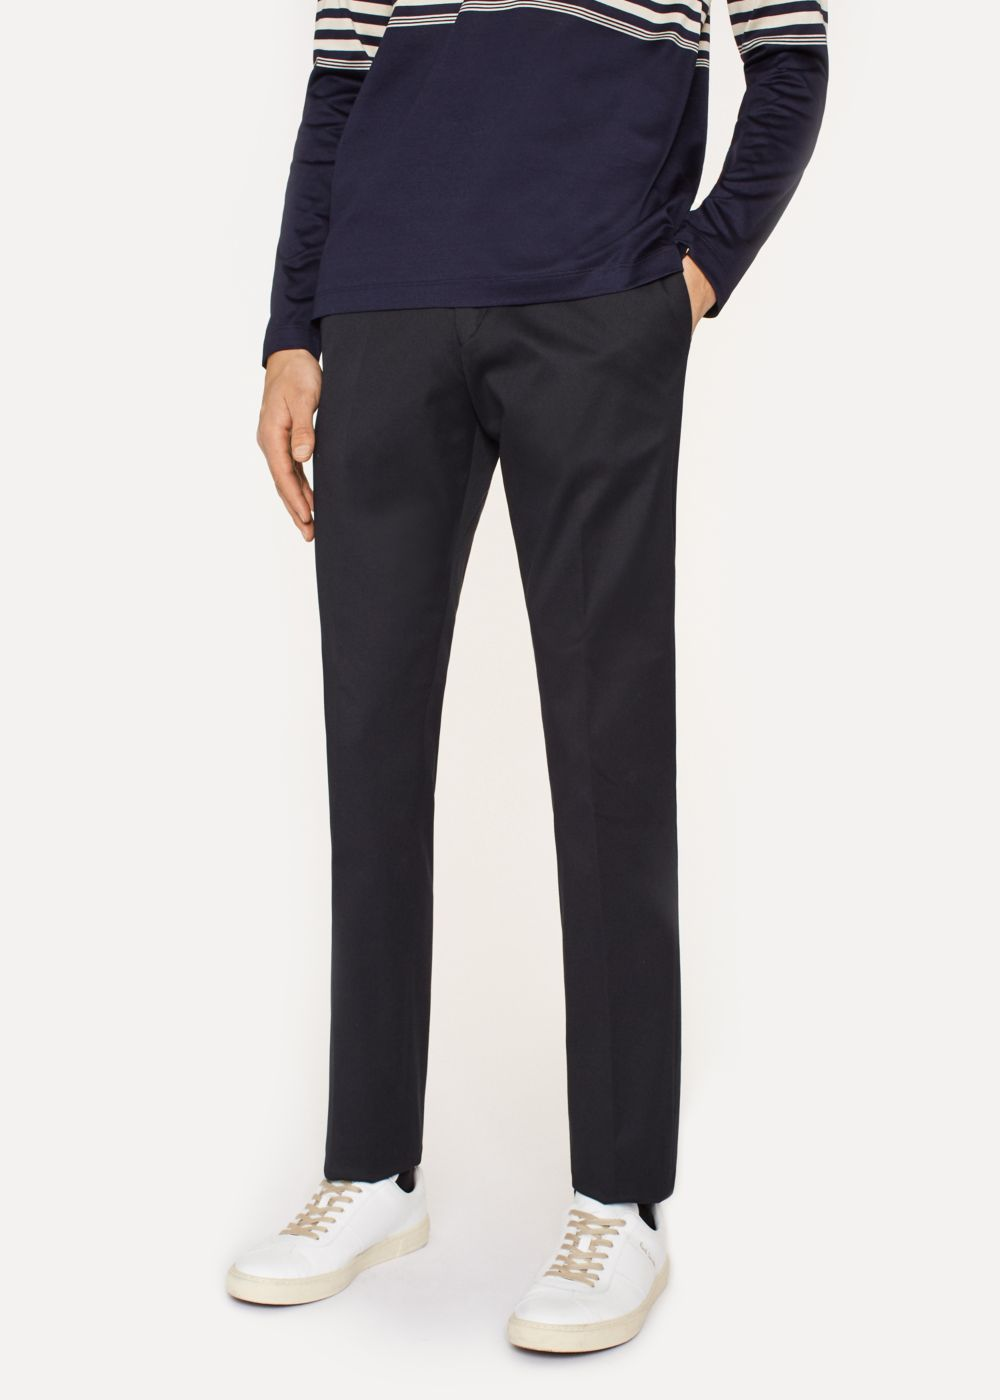 Paul Smith Men's Slim-Fit Navy Stretch-Cotton Twill Trousers